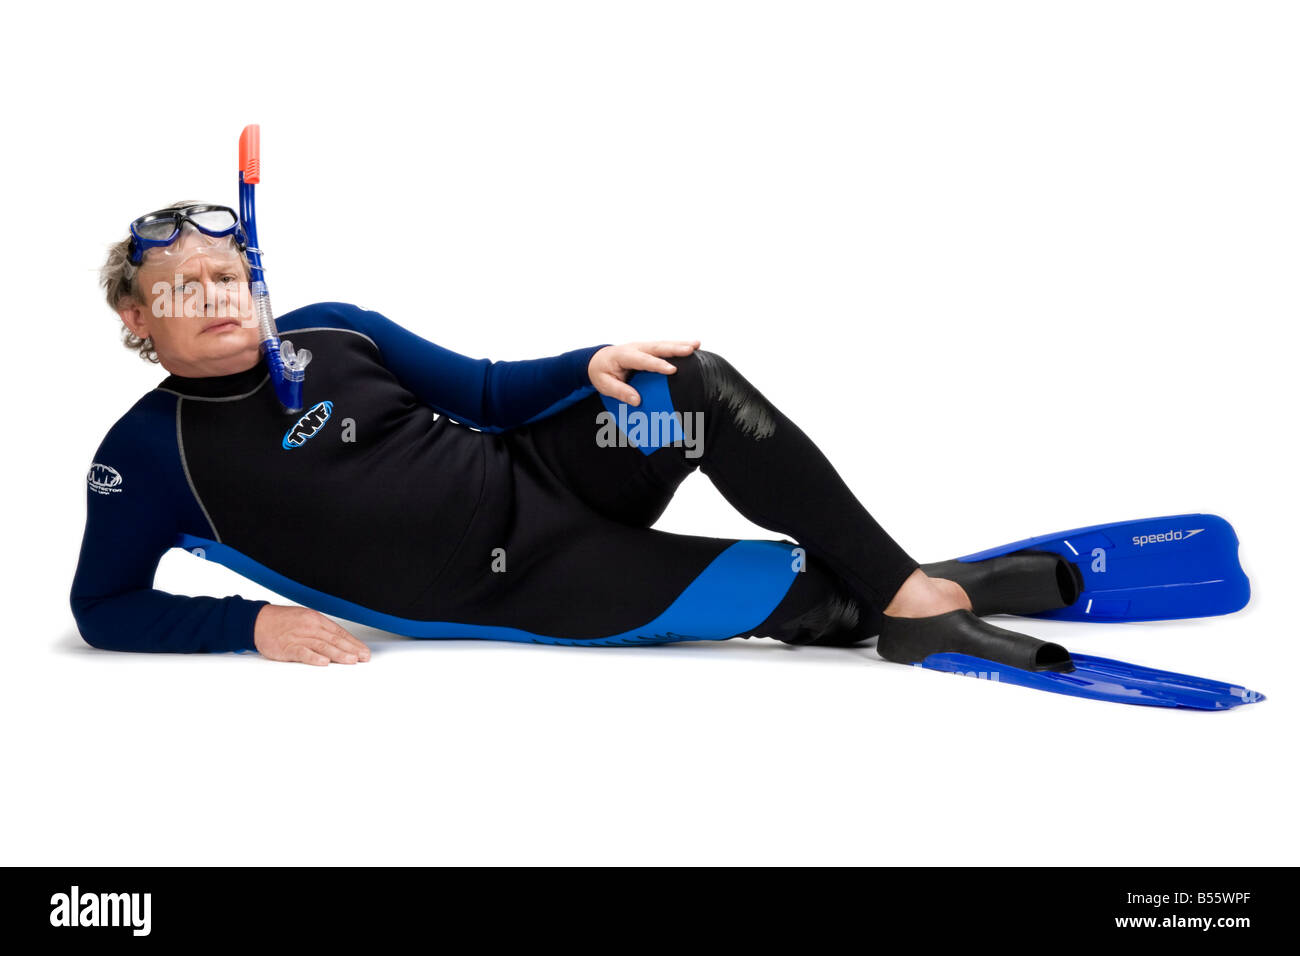 Martin Clunes lying down in a wet suit - Stock Image